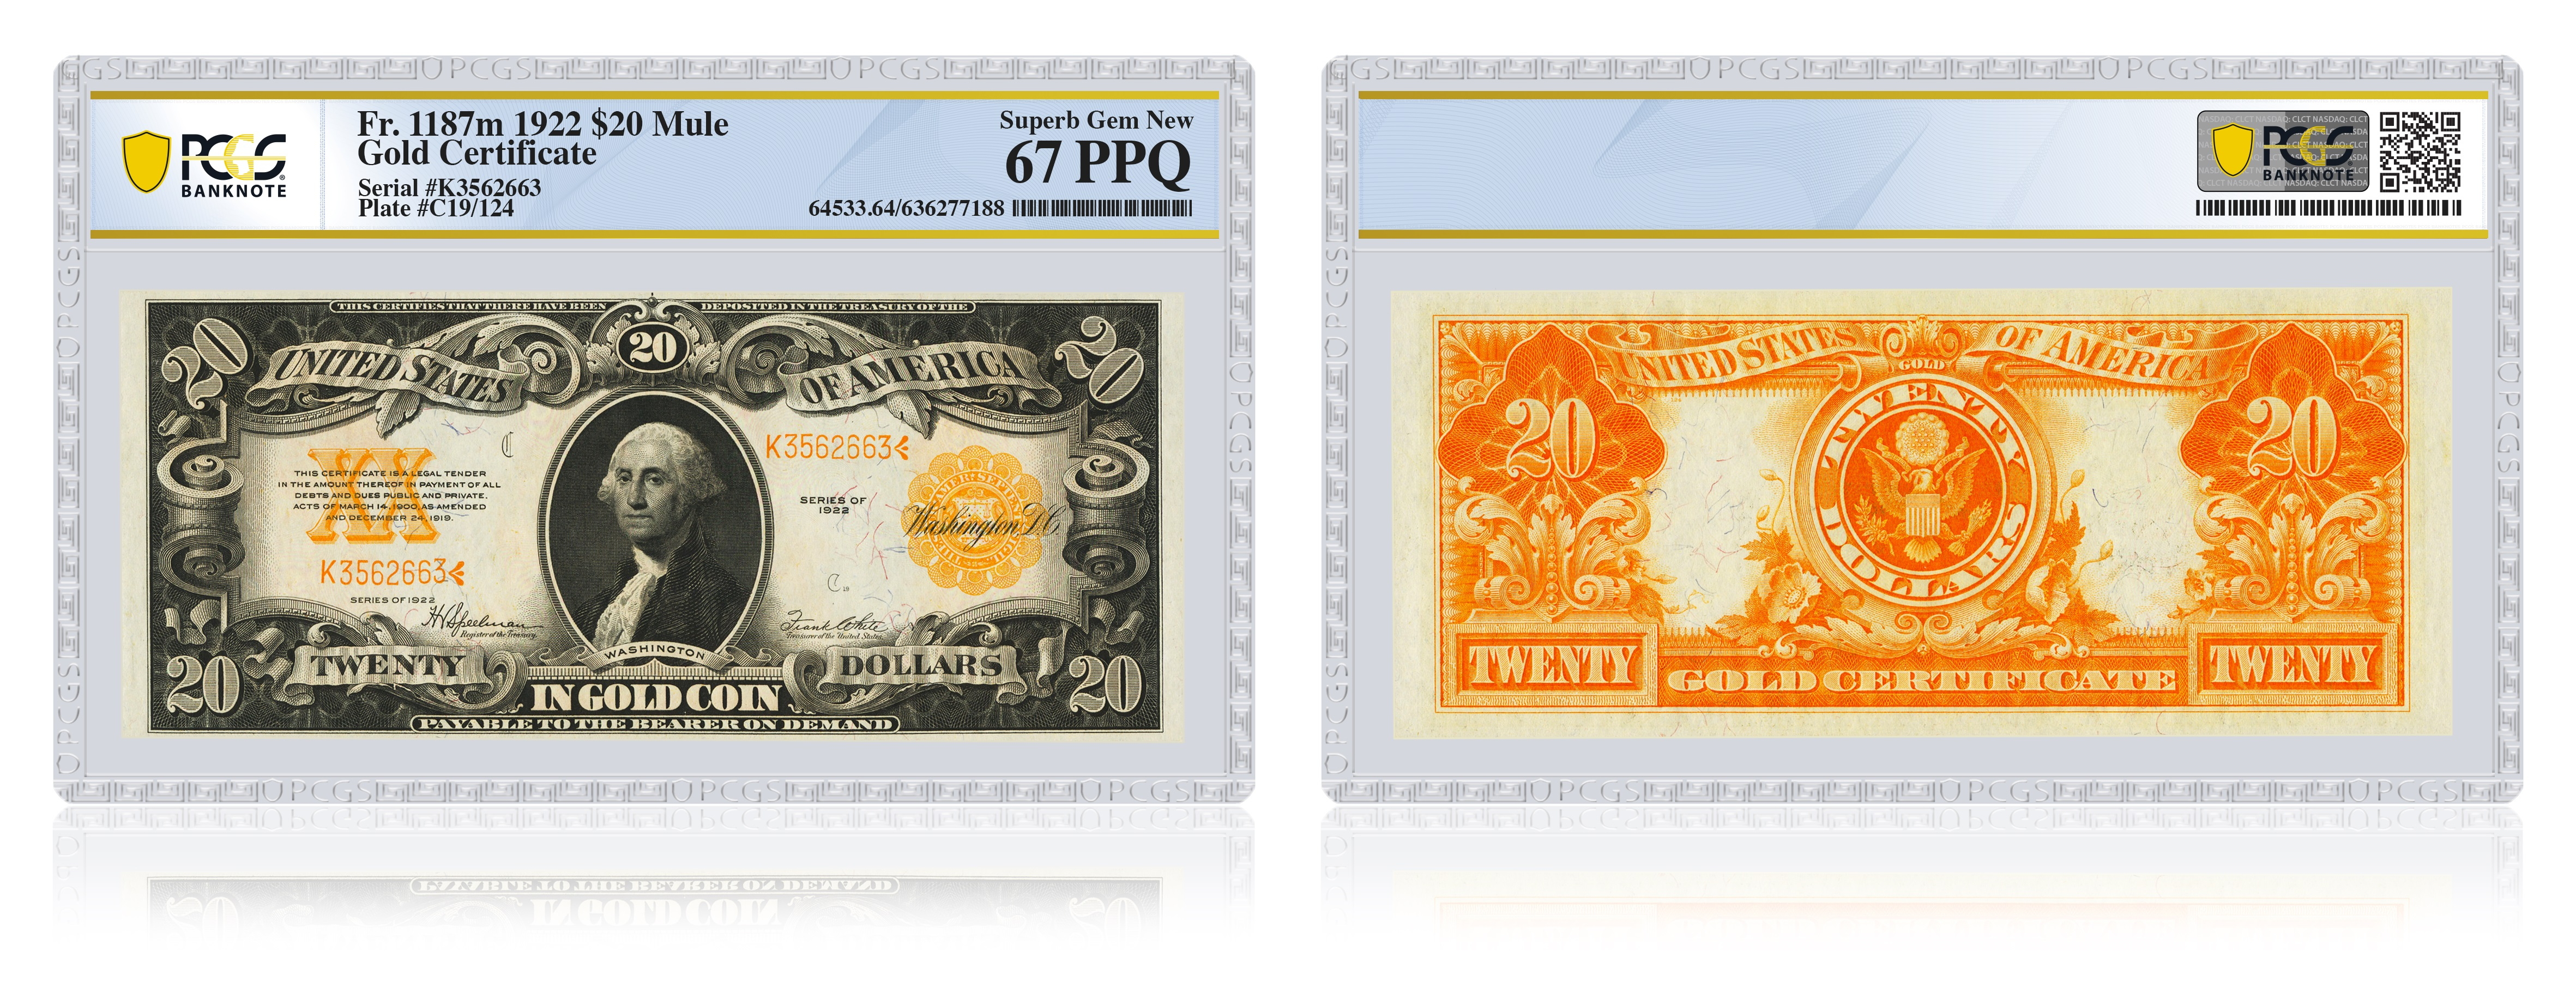 main image for PCGS to get back into paper money grading. First submissions accepted in January